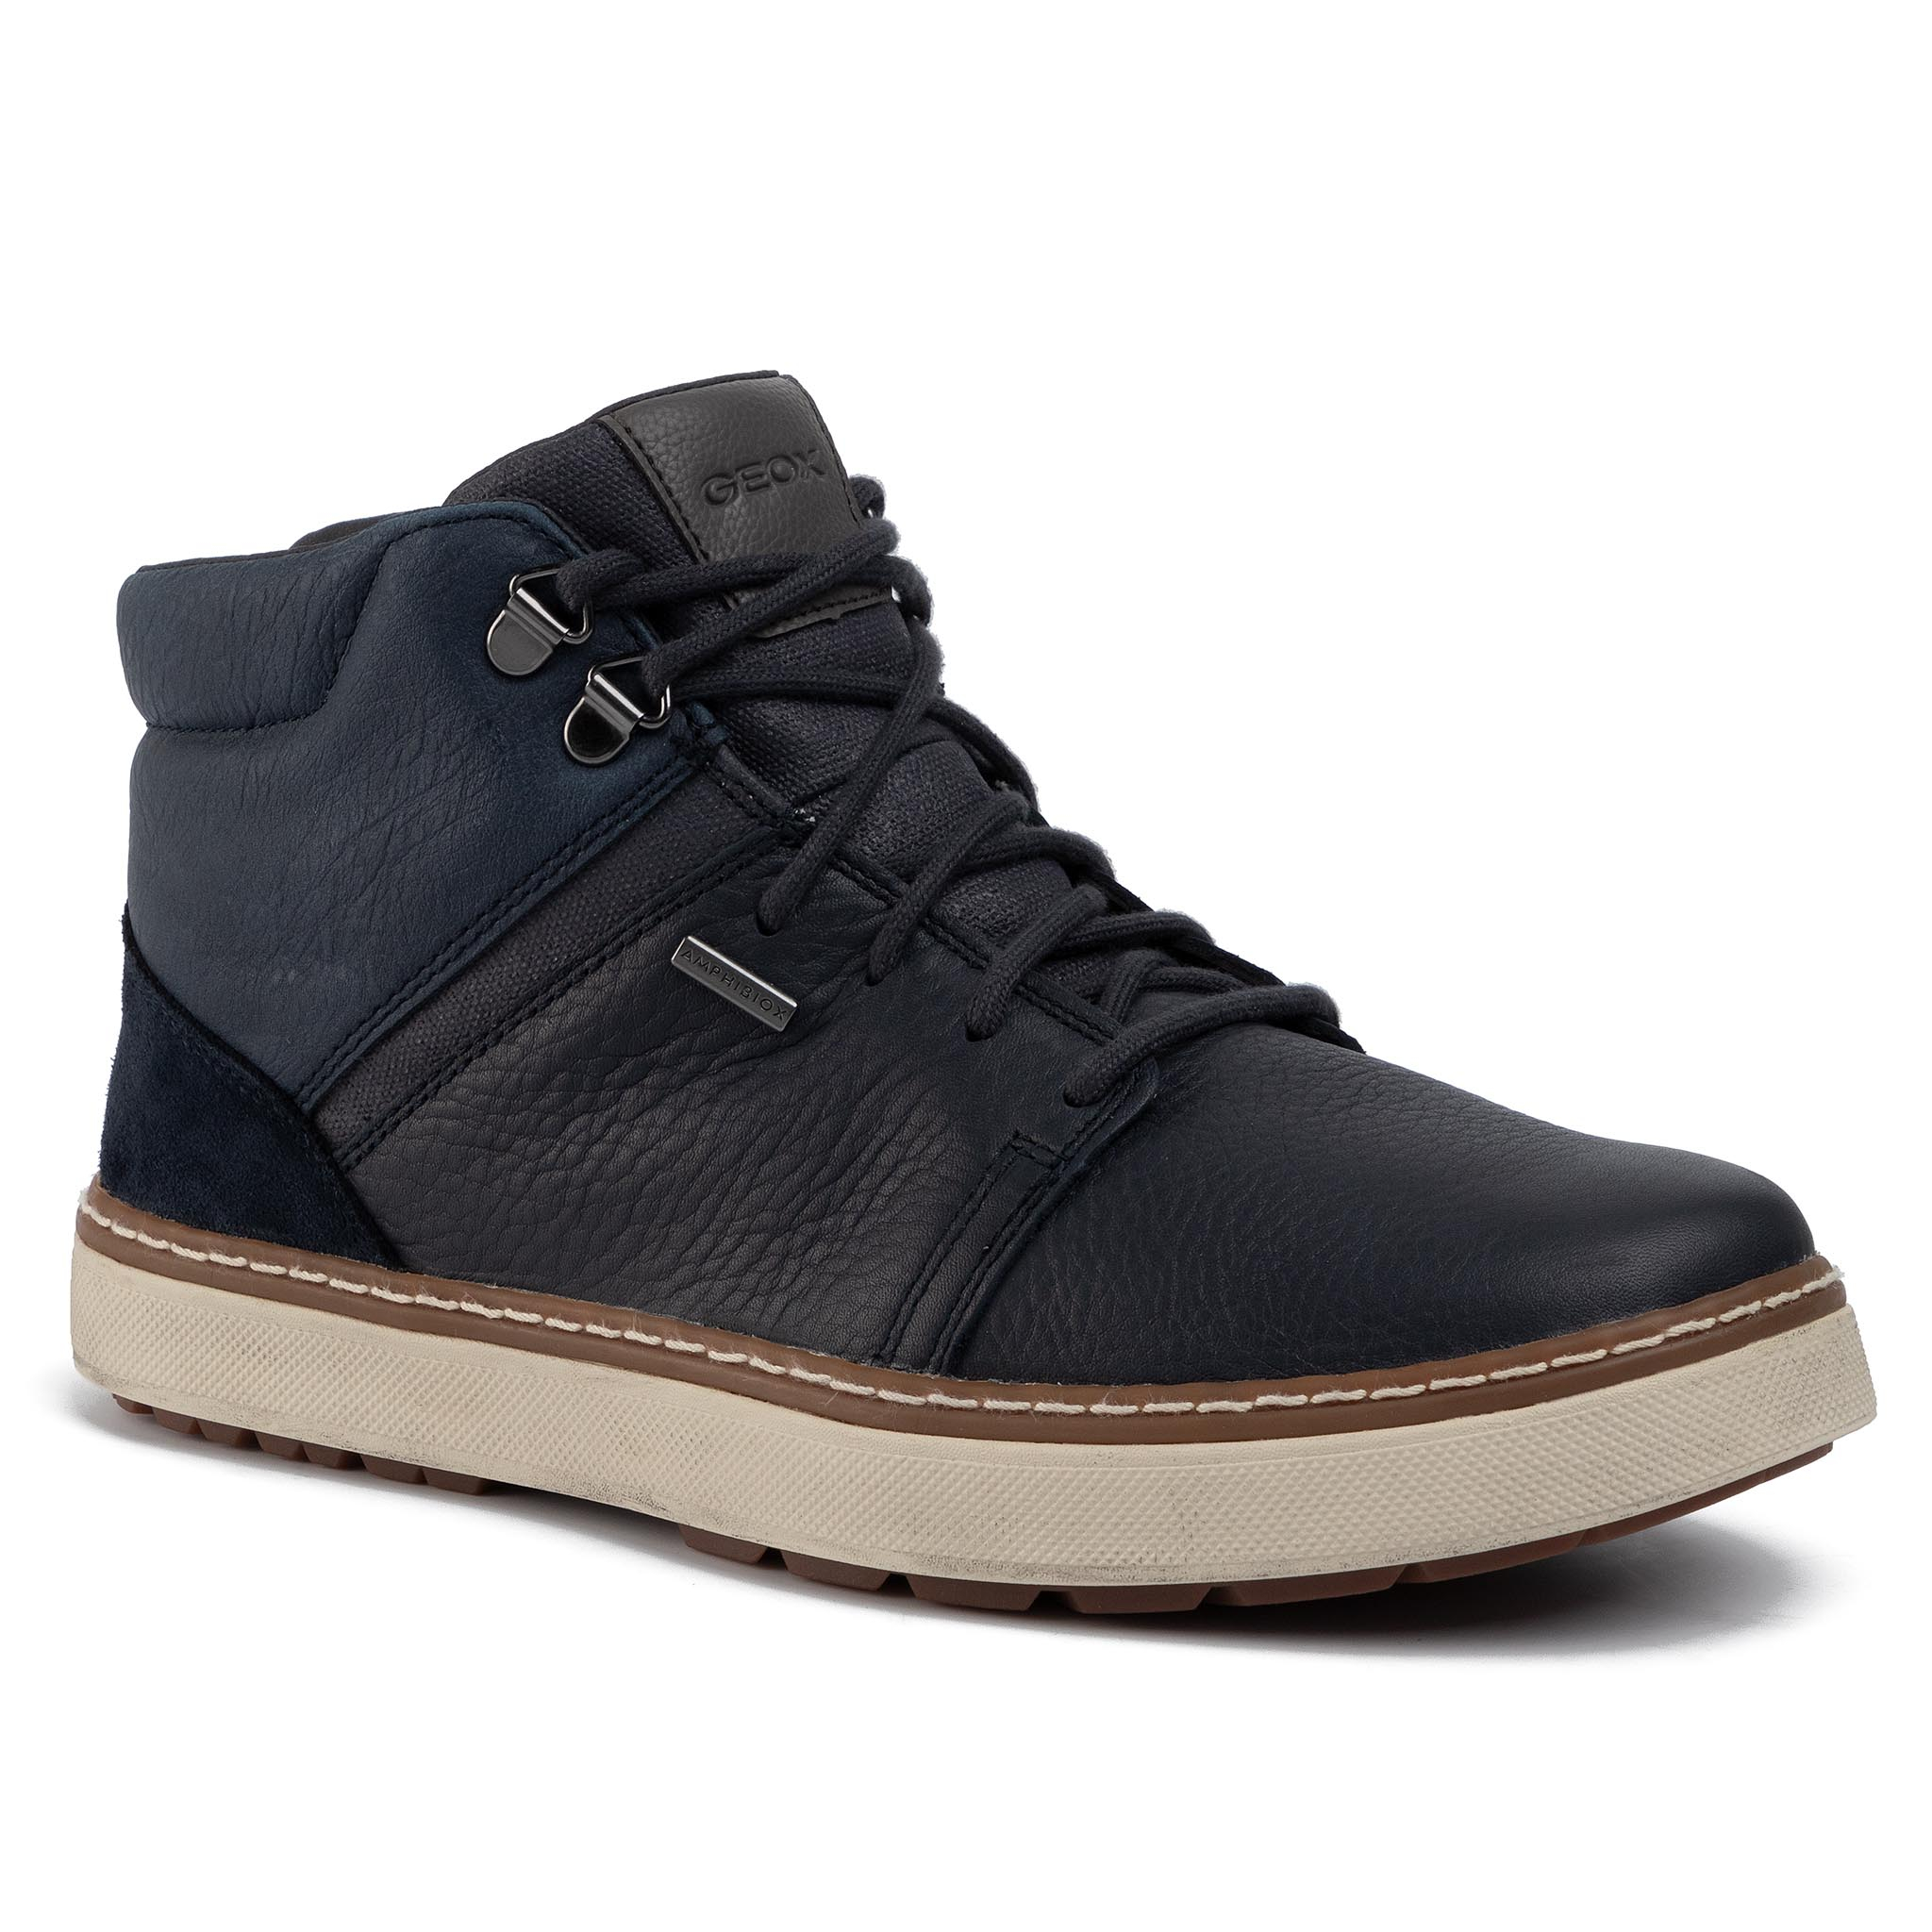 Ghete Geox - U Mattias Babx A U84t1a 046fe C4002 Navy 410 imagine